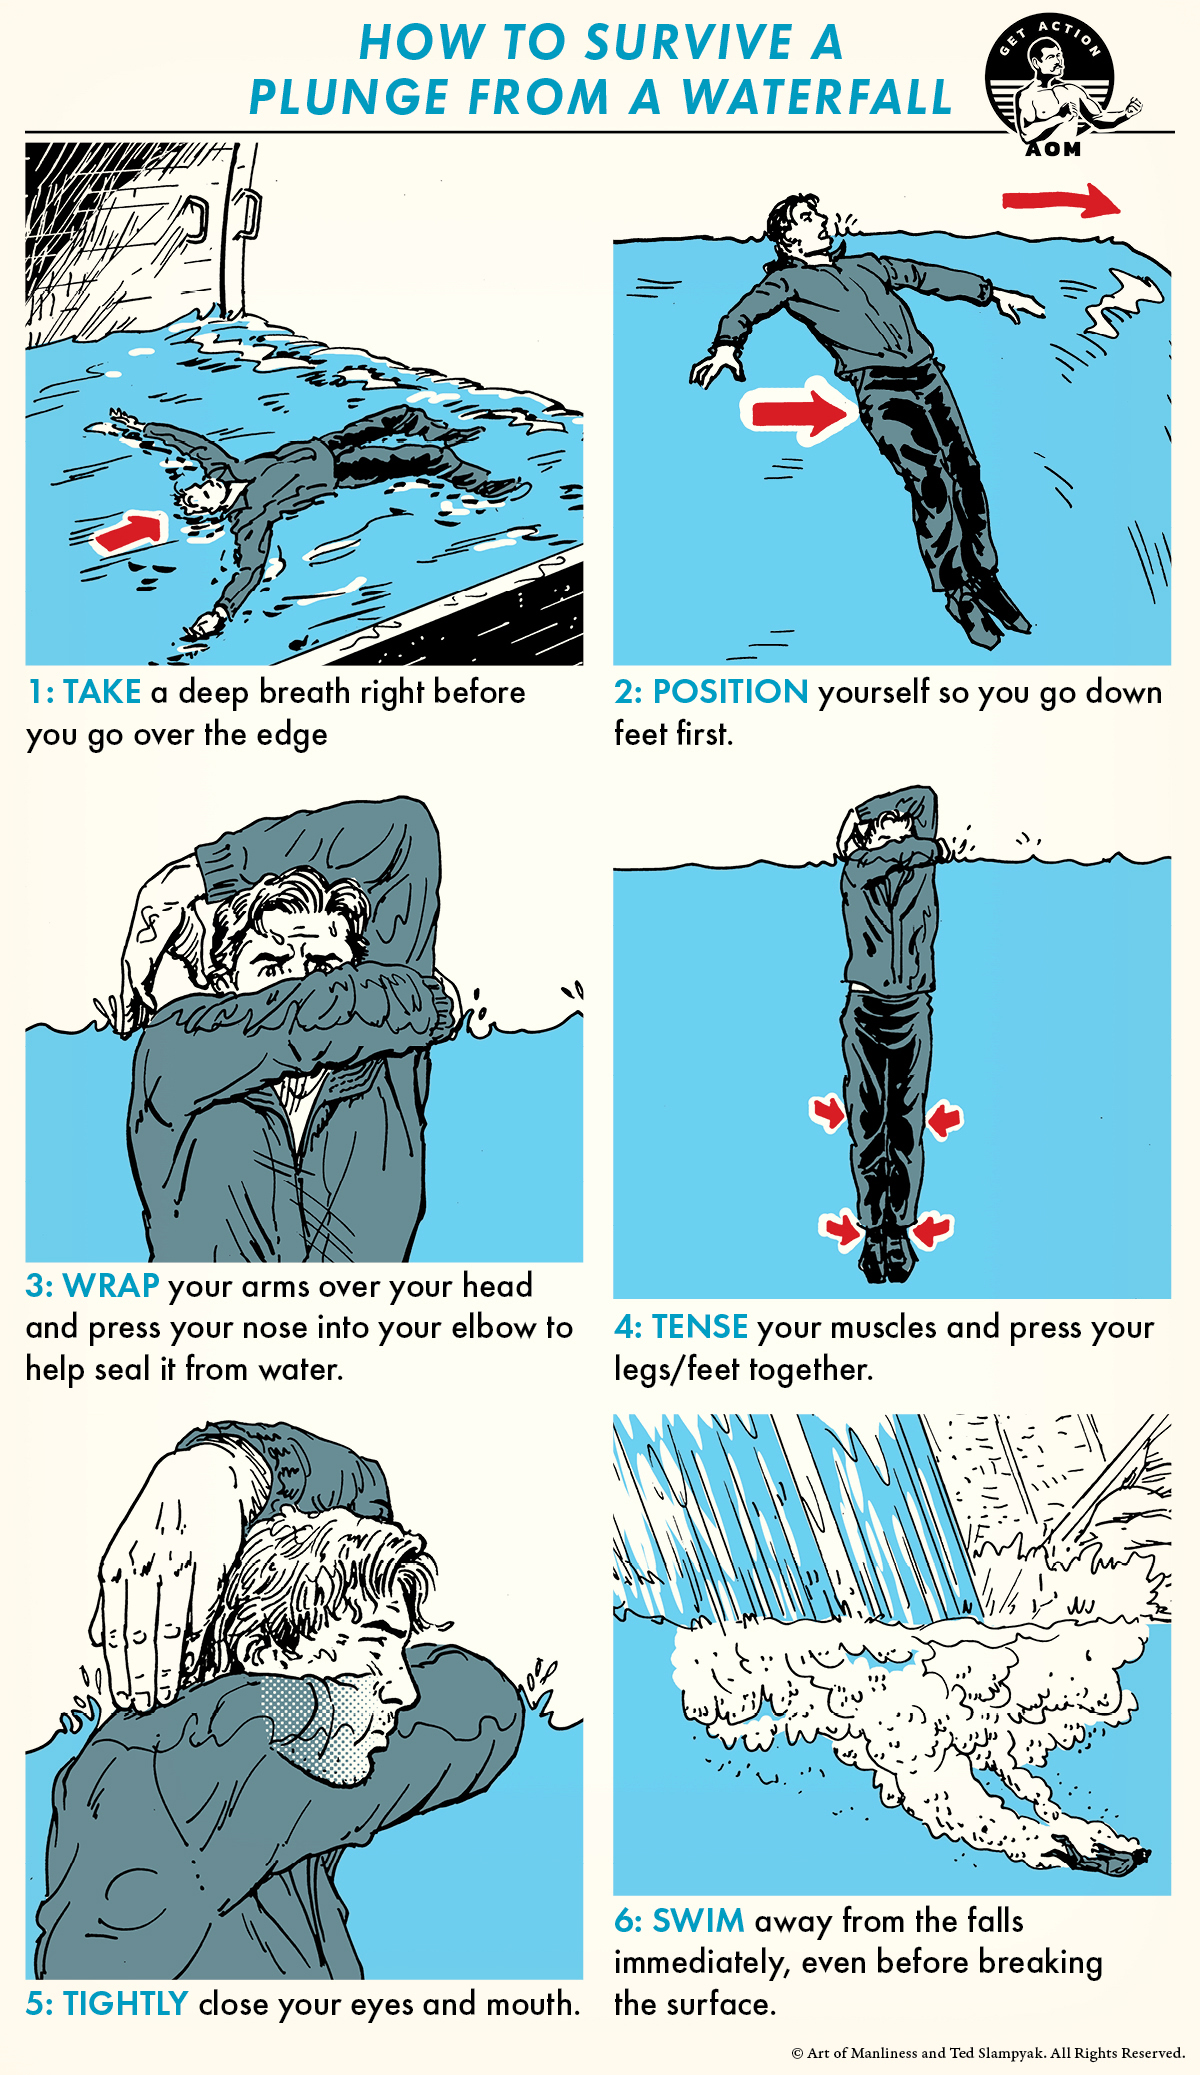 Survive a plunge from a waterfall illustration.